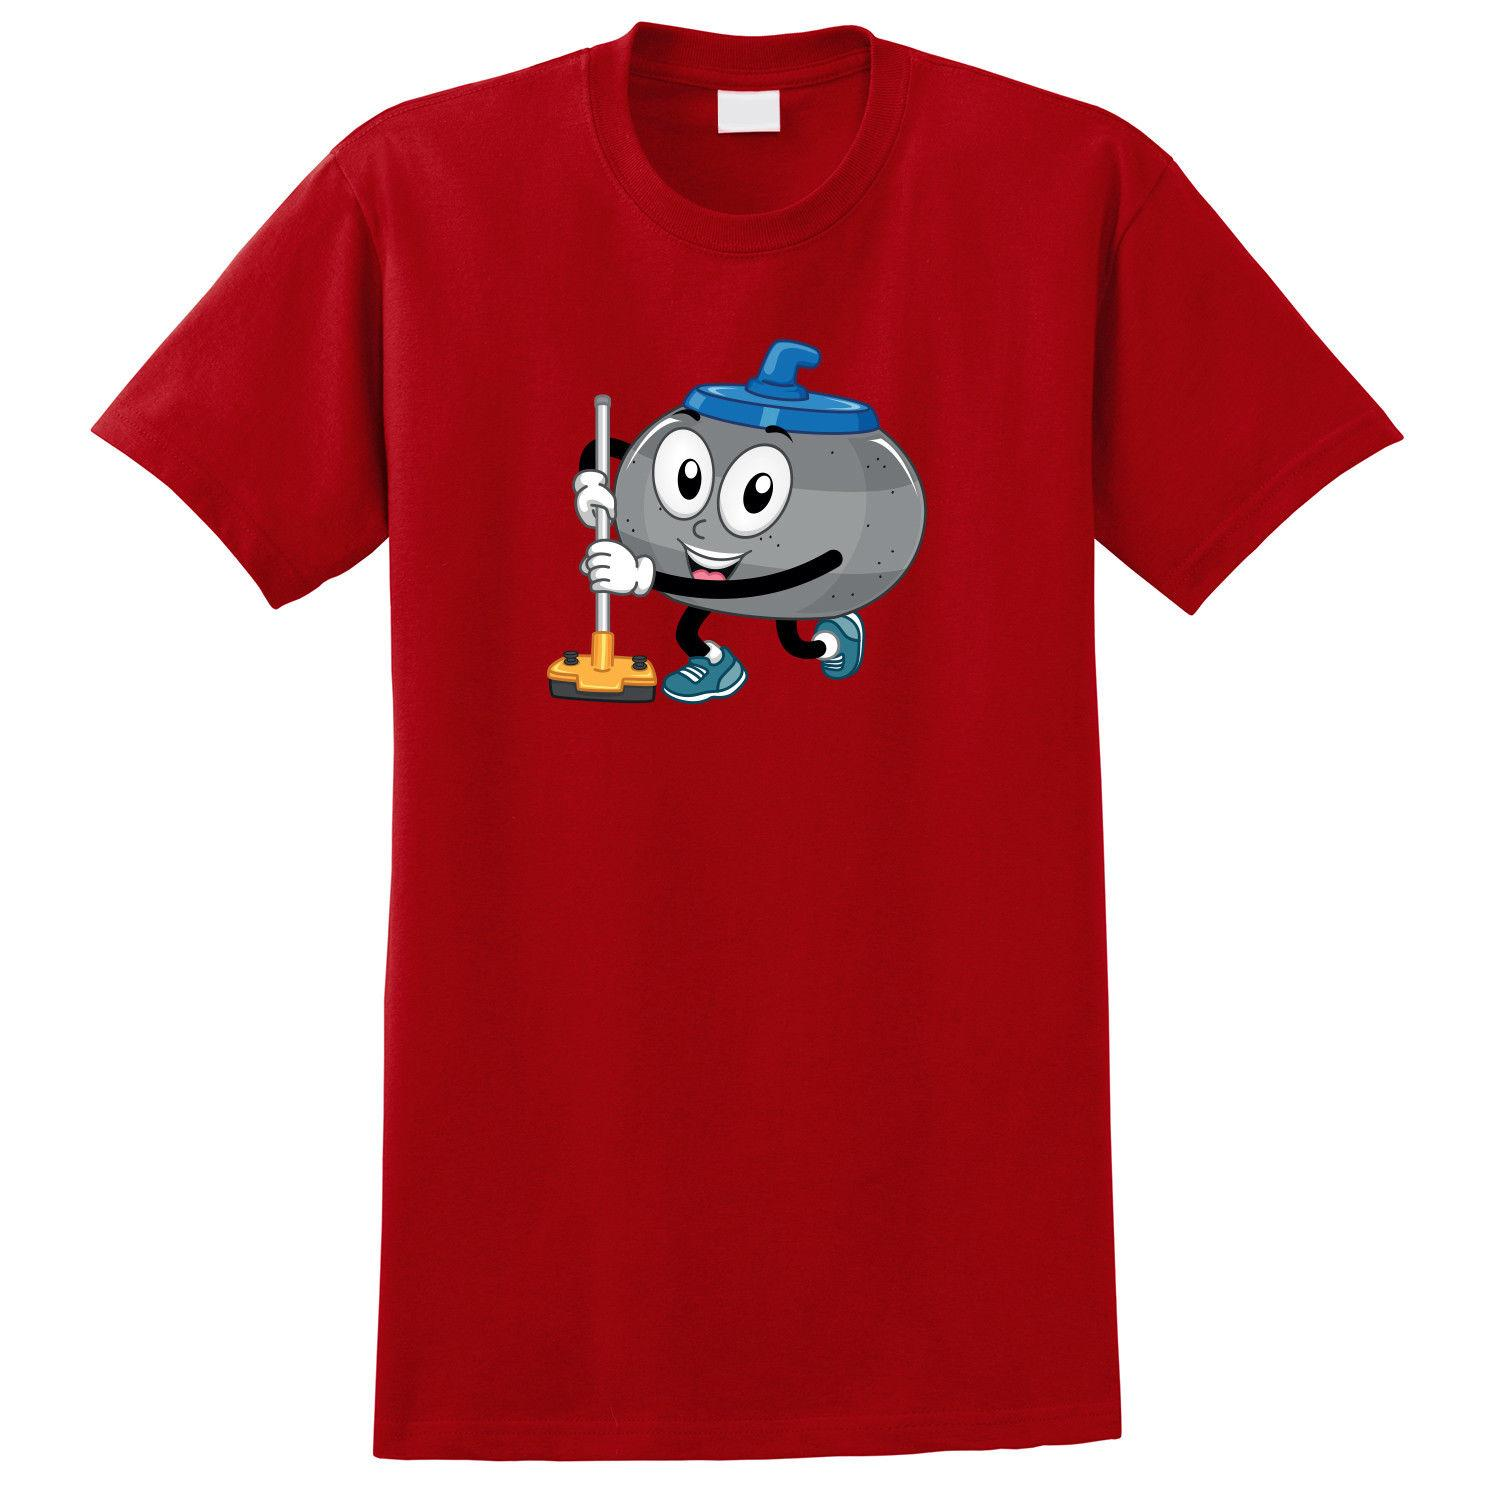 Curling Stone Cartoon Imprimir camiseta Divertido envío gratis Unisex Casual camiseta de regalo